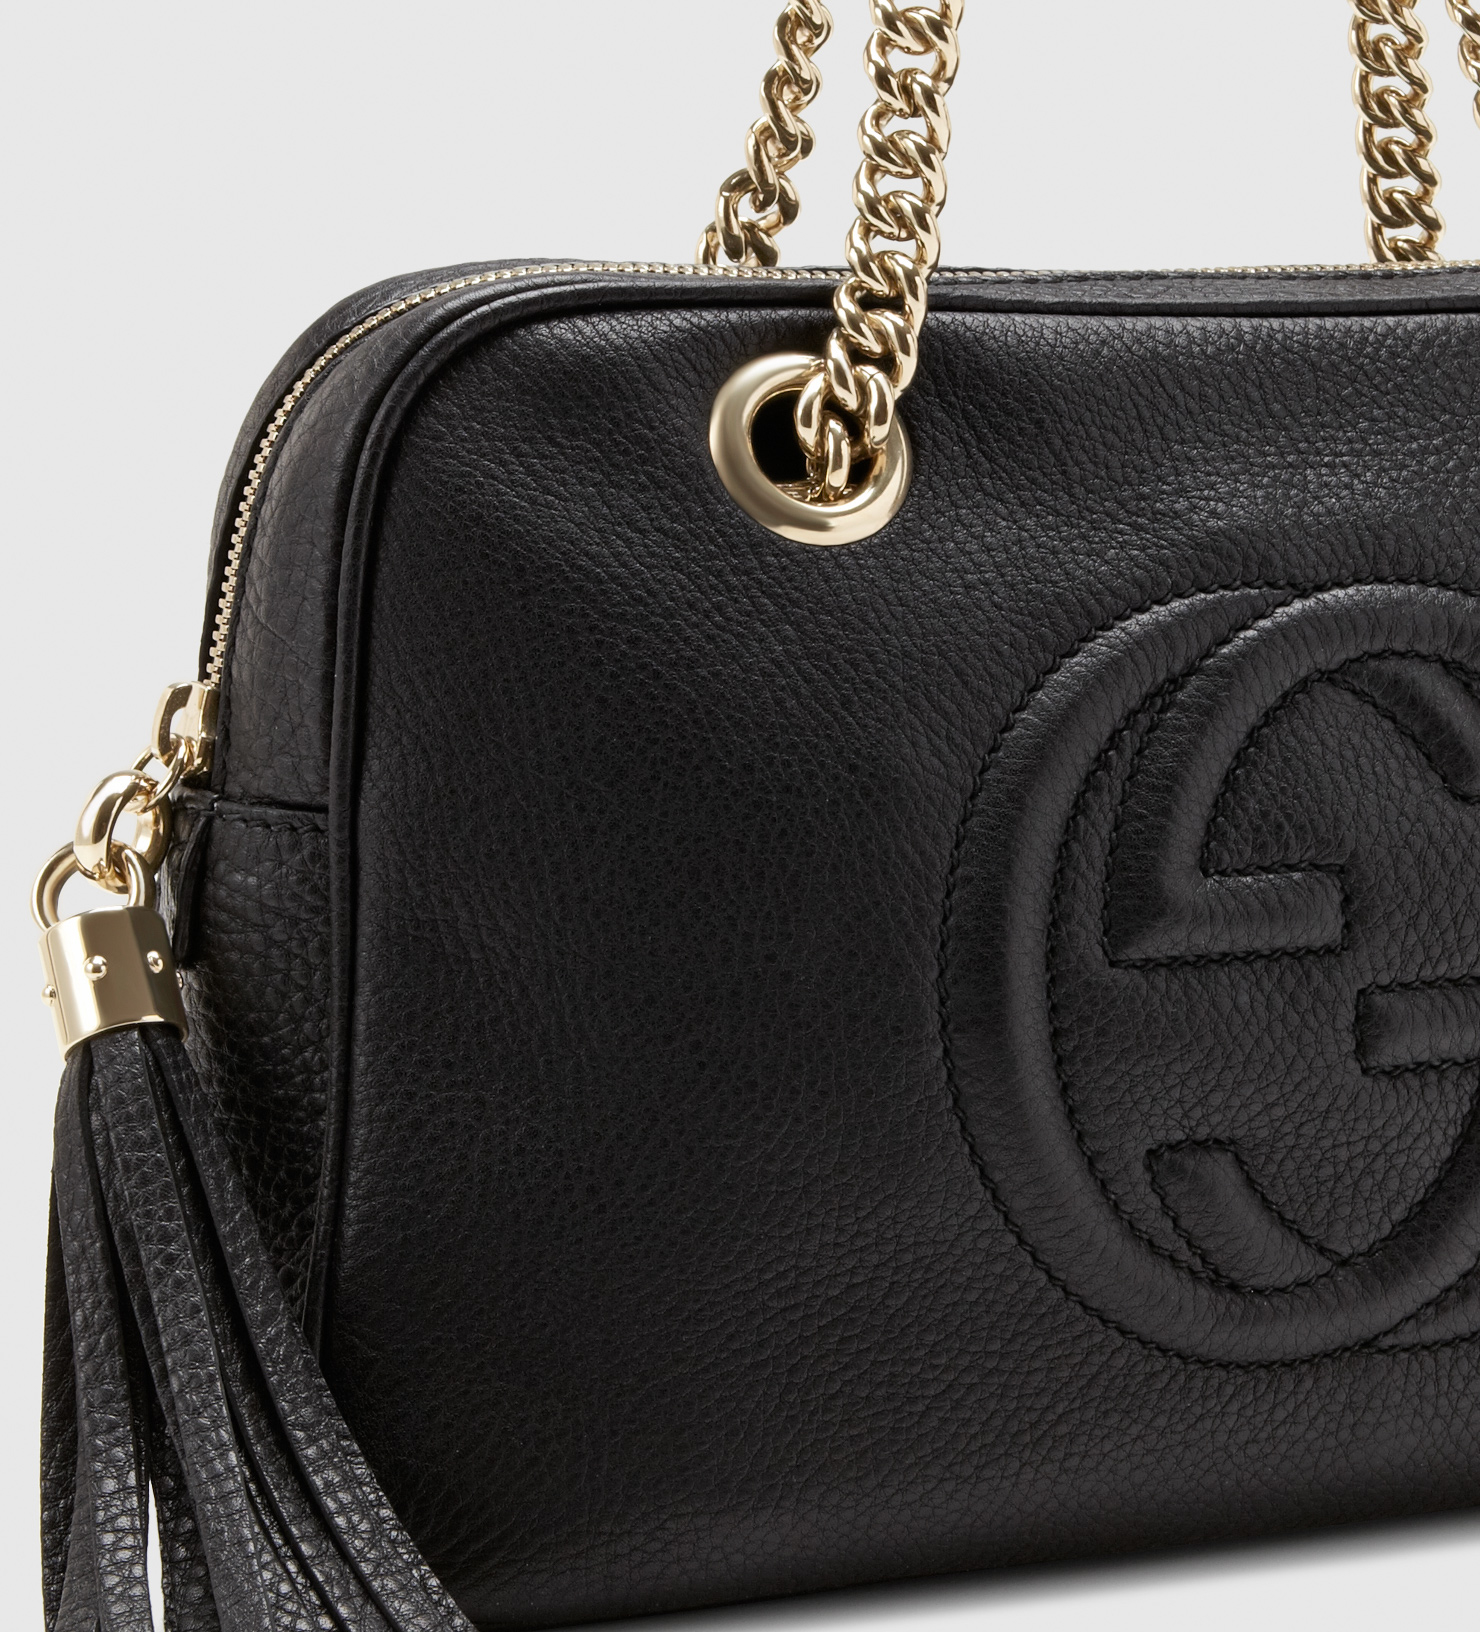 50c602a4aeaf Gucci Bag Supply Chain | Stanford Center for Opportunity Policy in ...